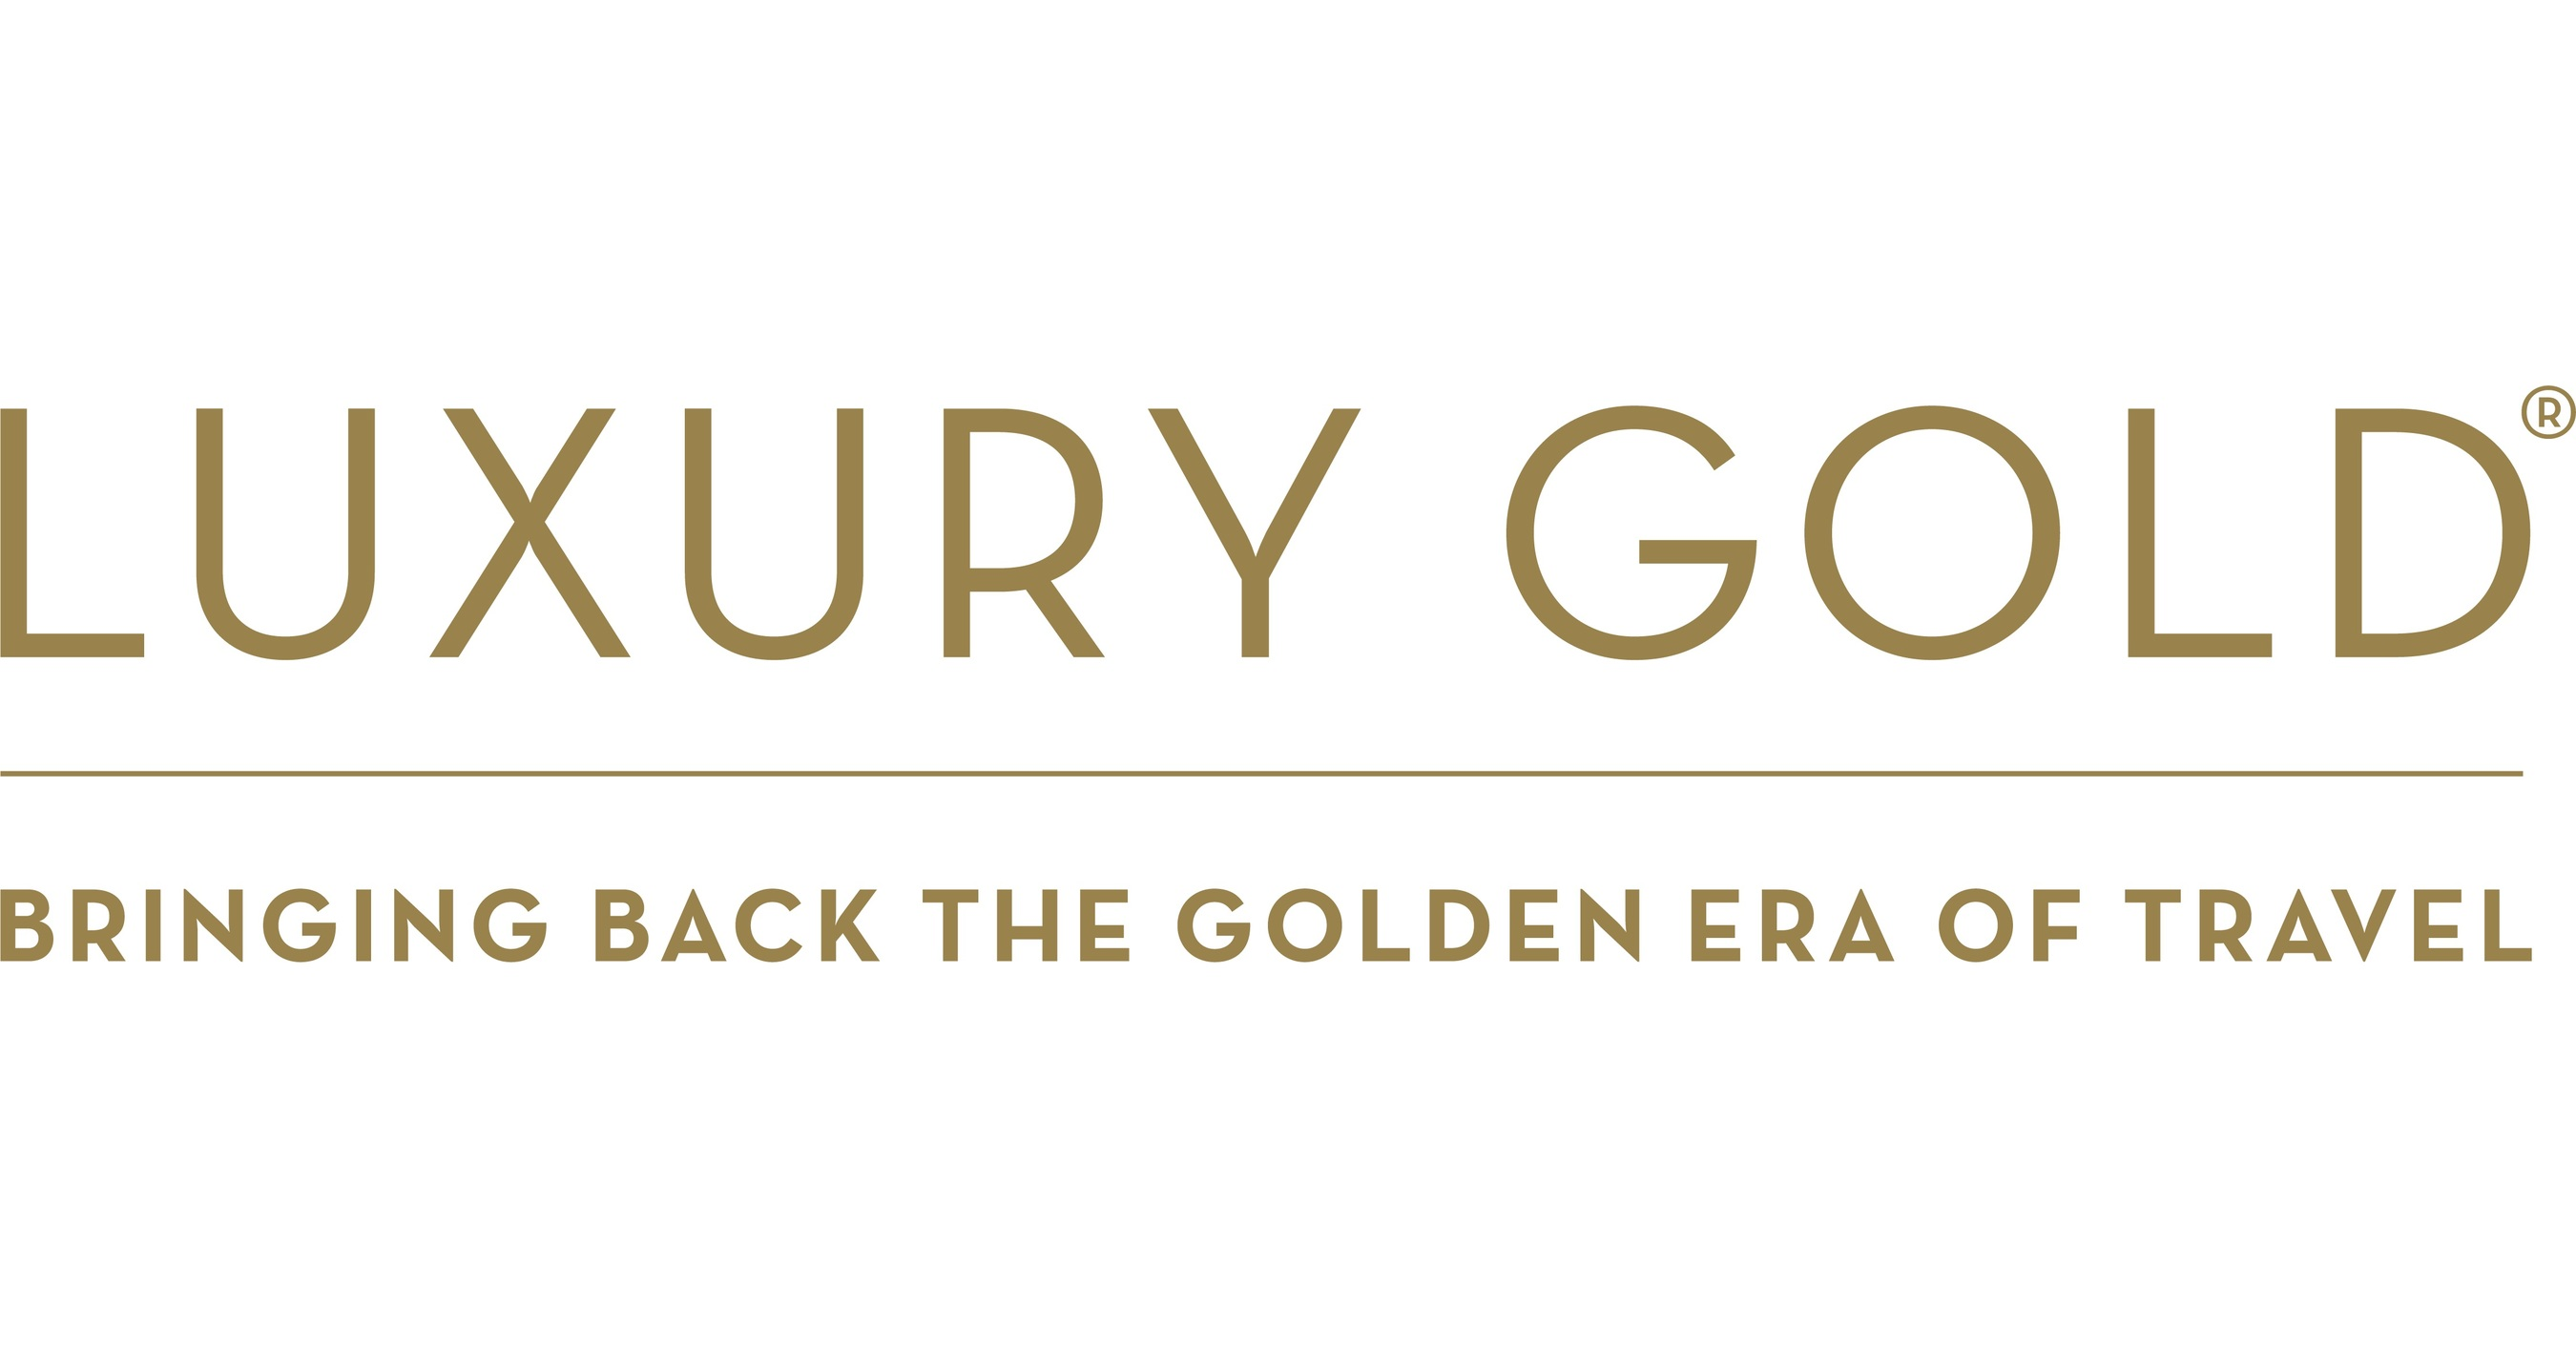 luxurious and splendid live stream chat room. Celebrate Britain s Royal Milestones with Luxury Gold Newest Itinerary